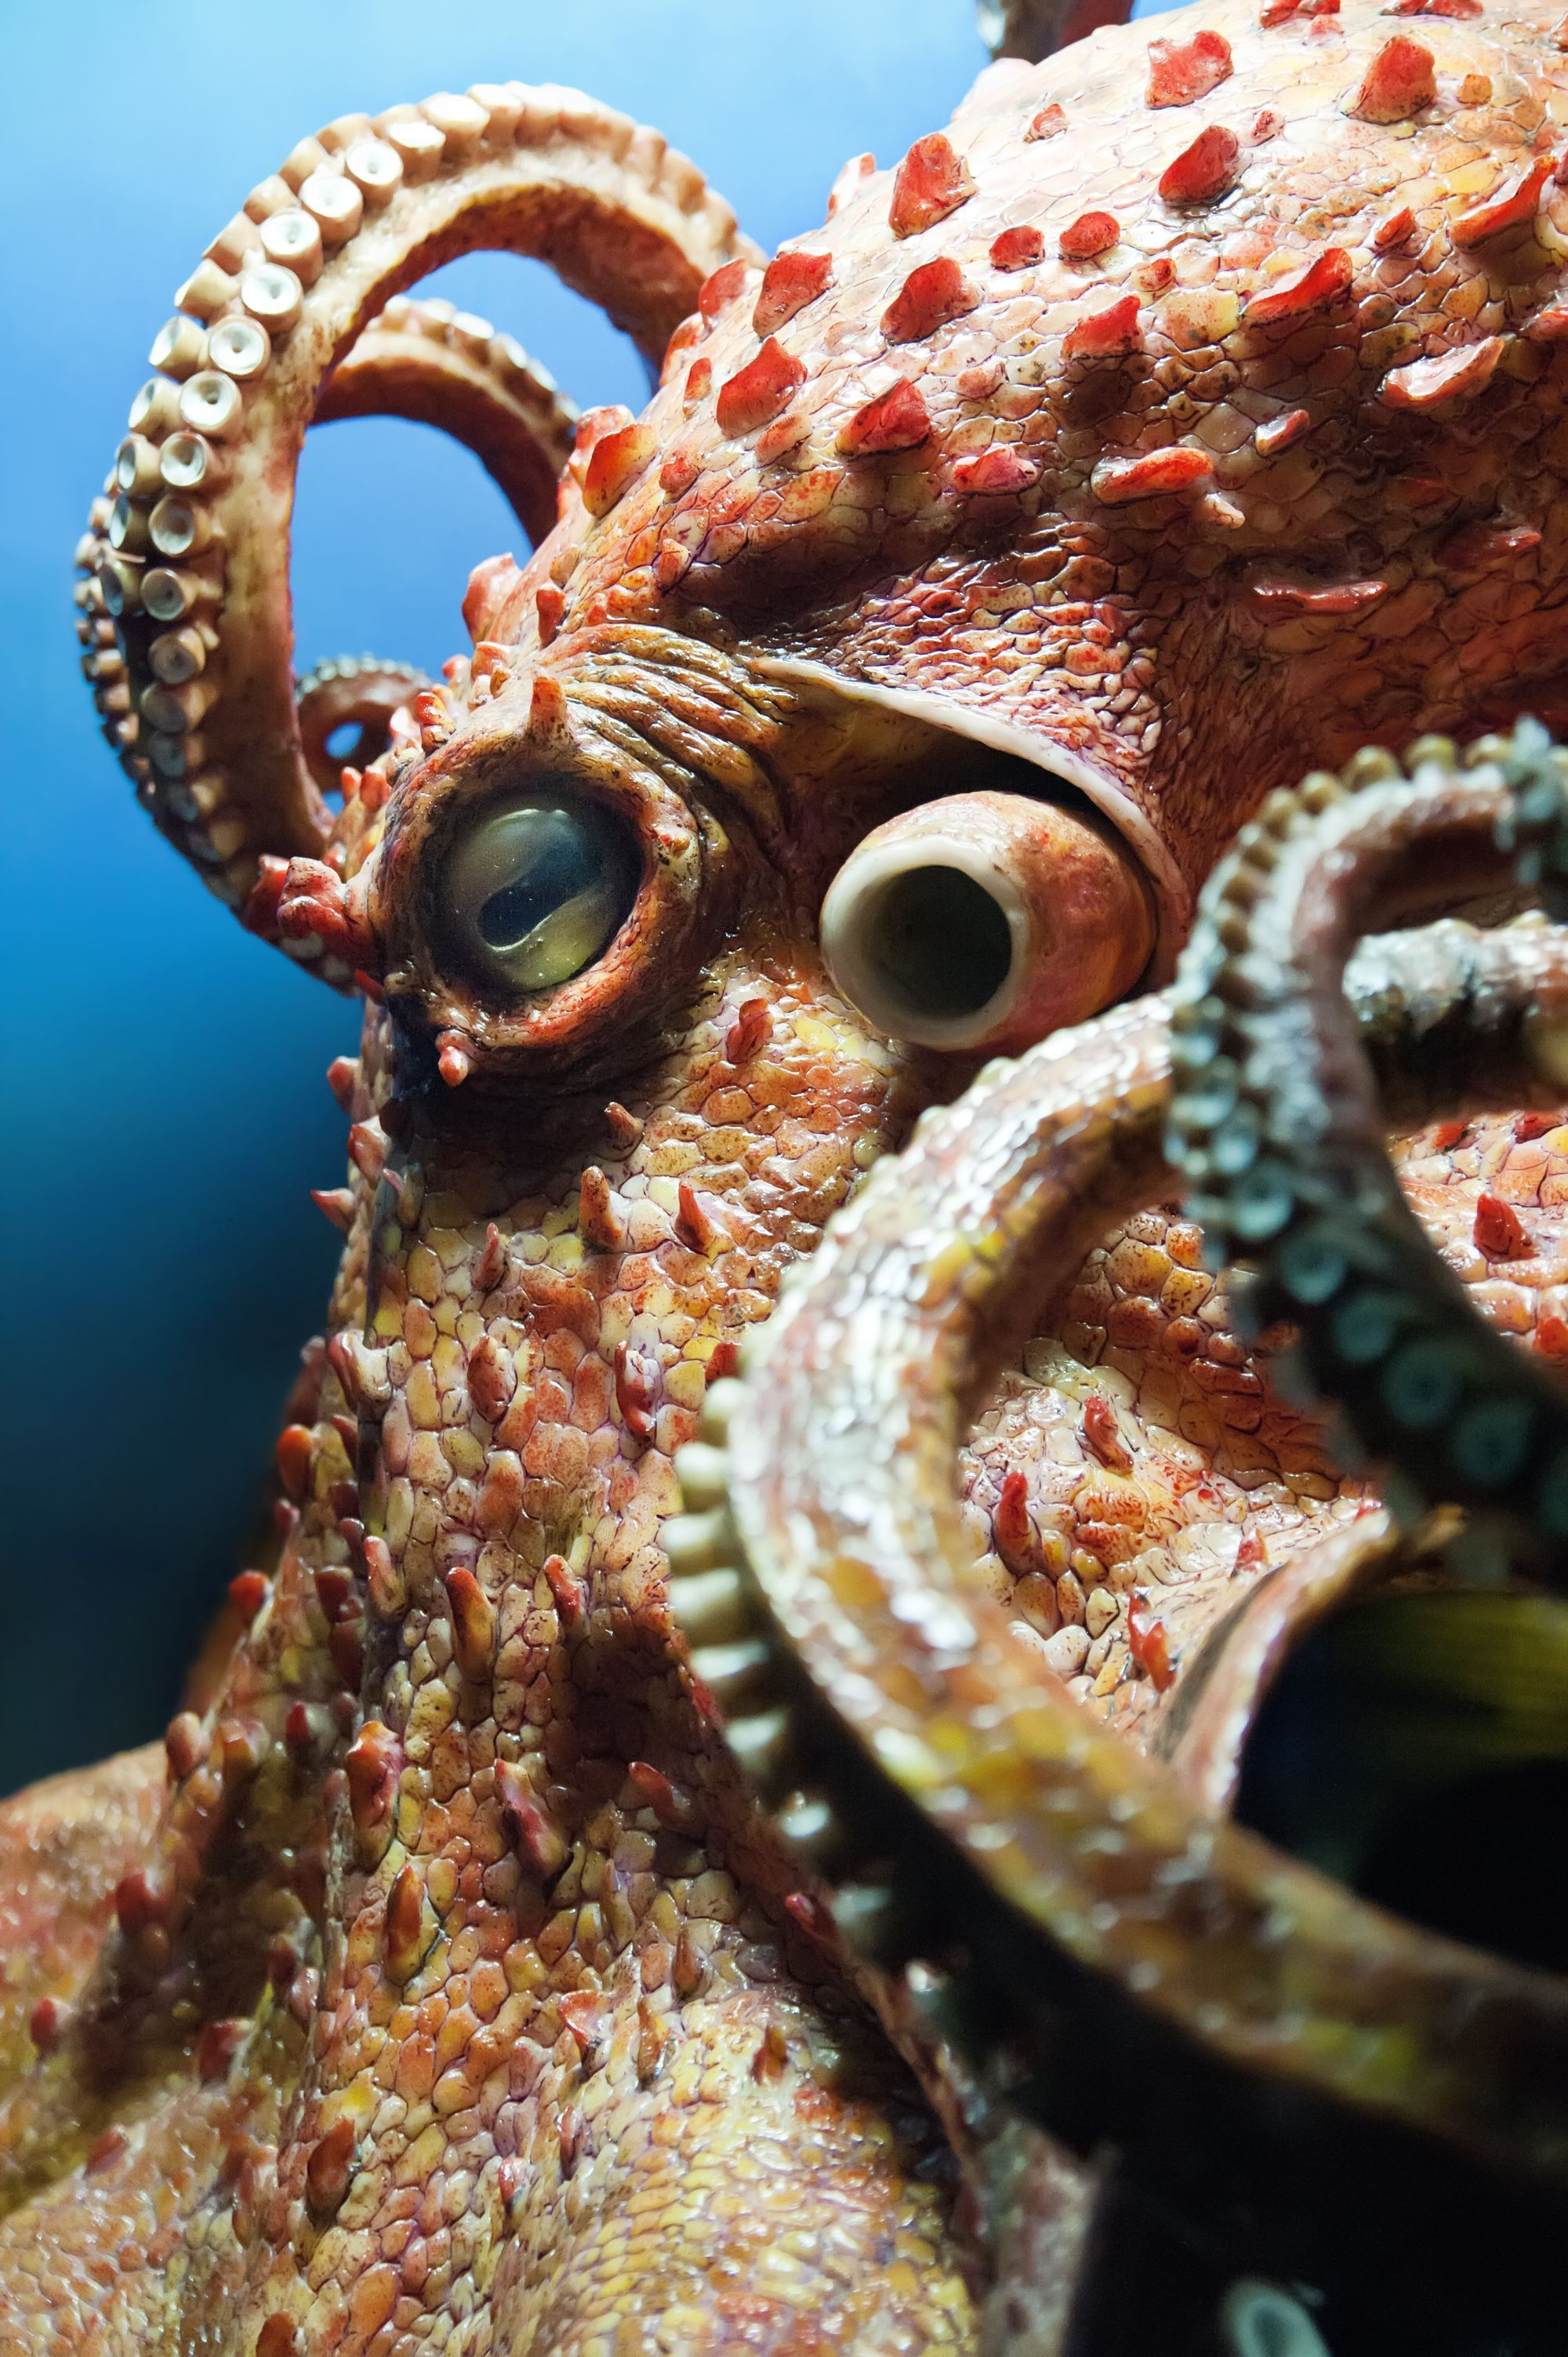 Octopuses of thread